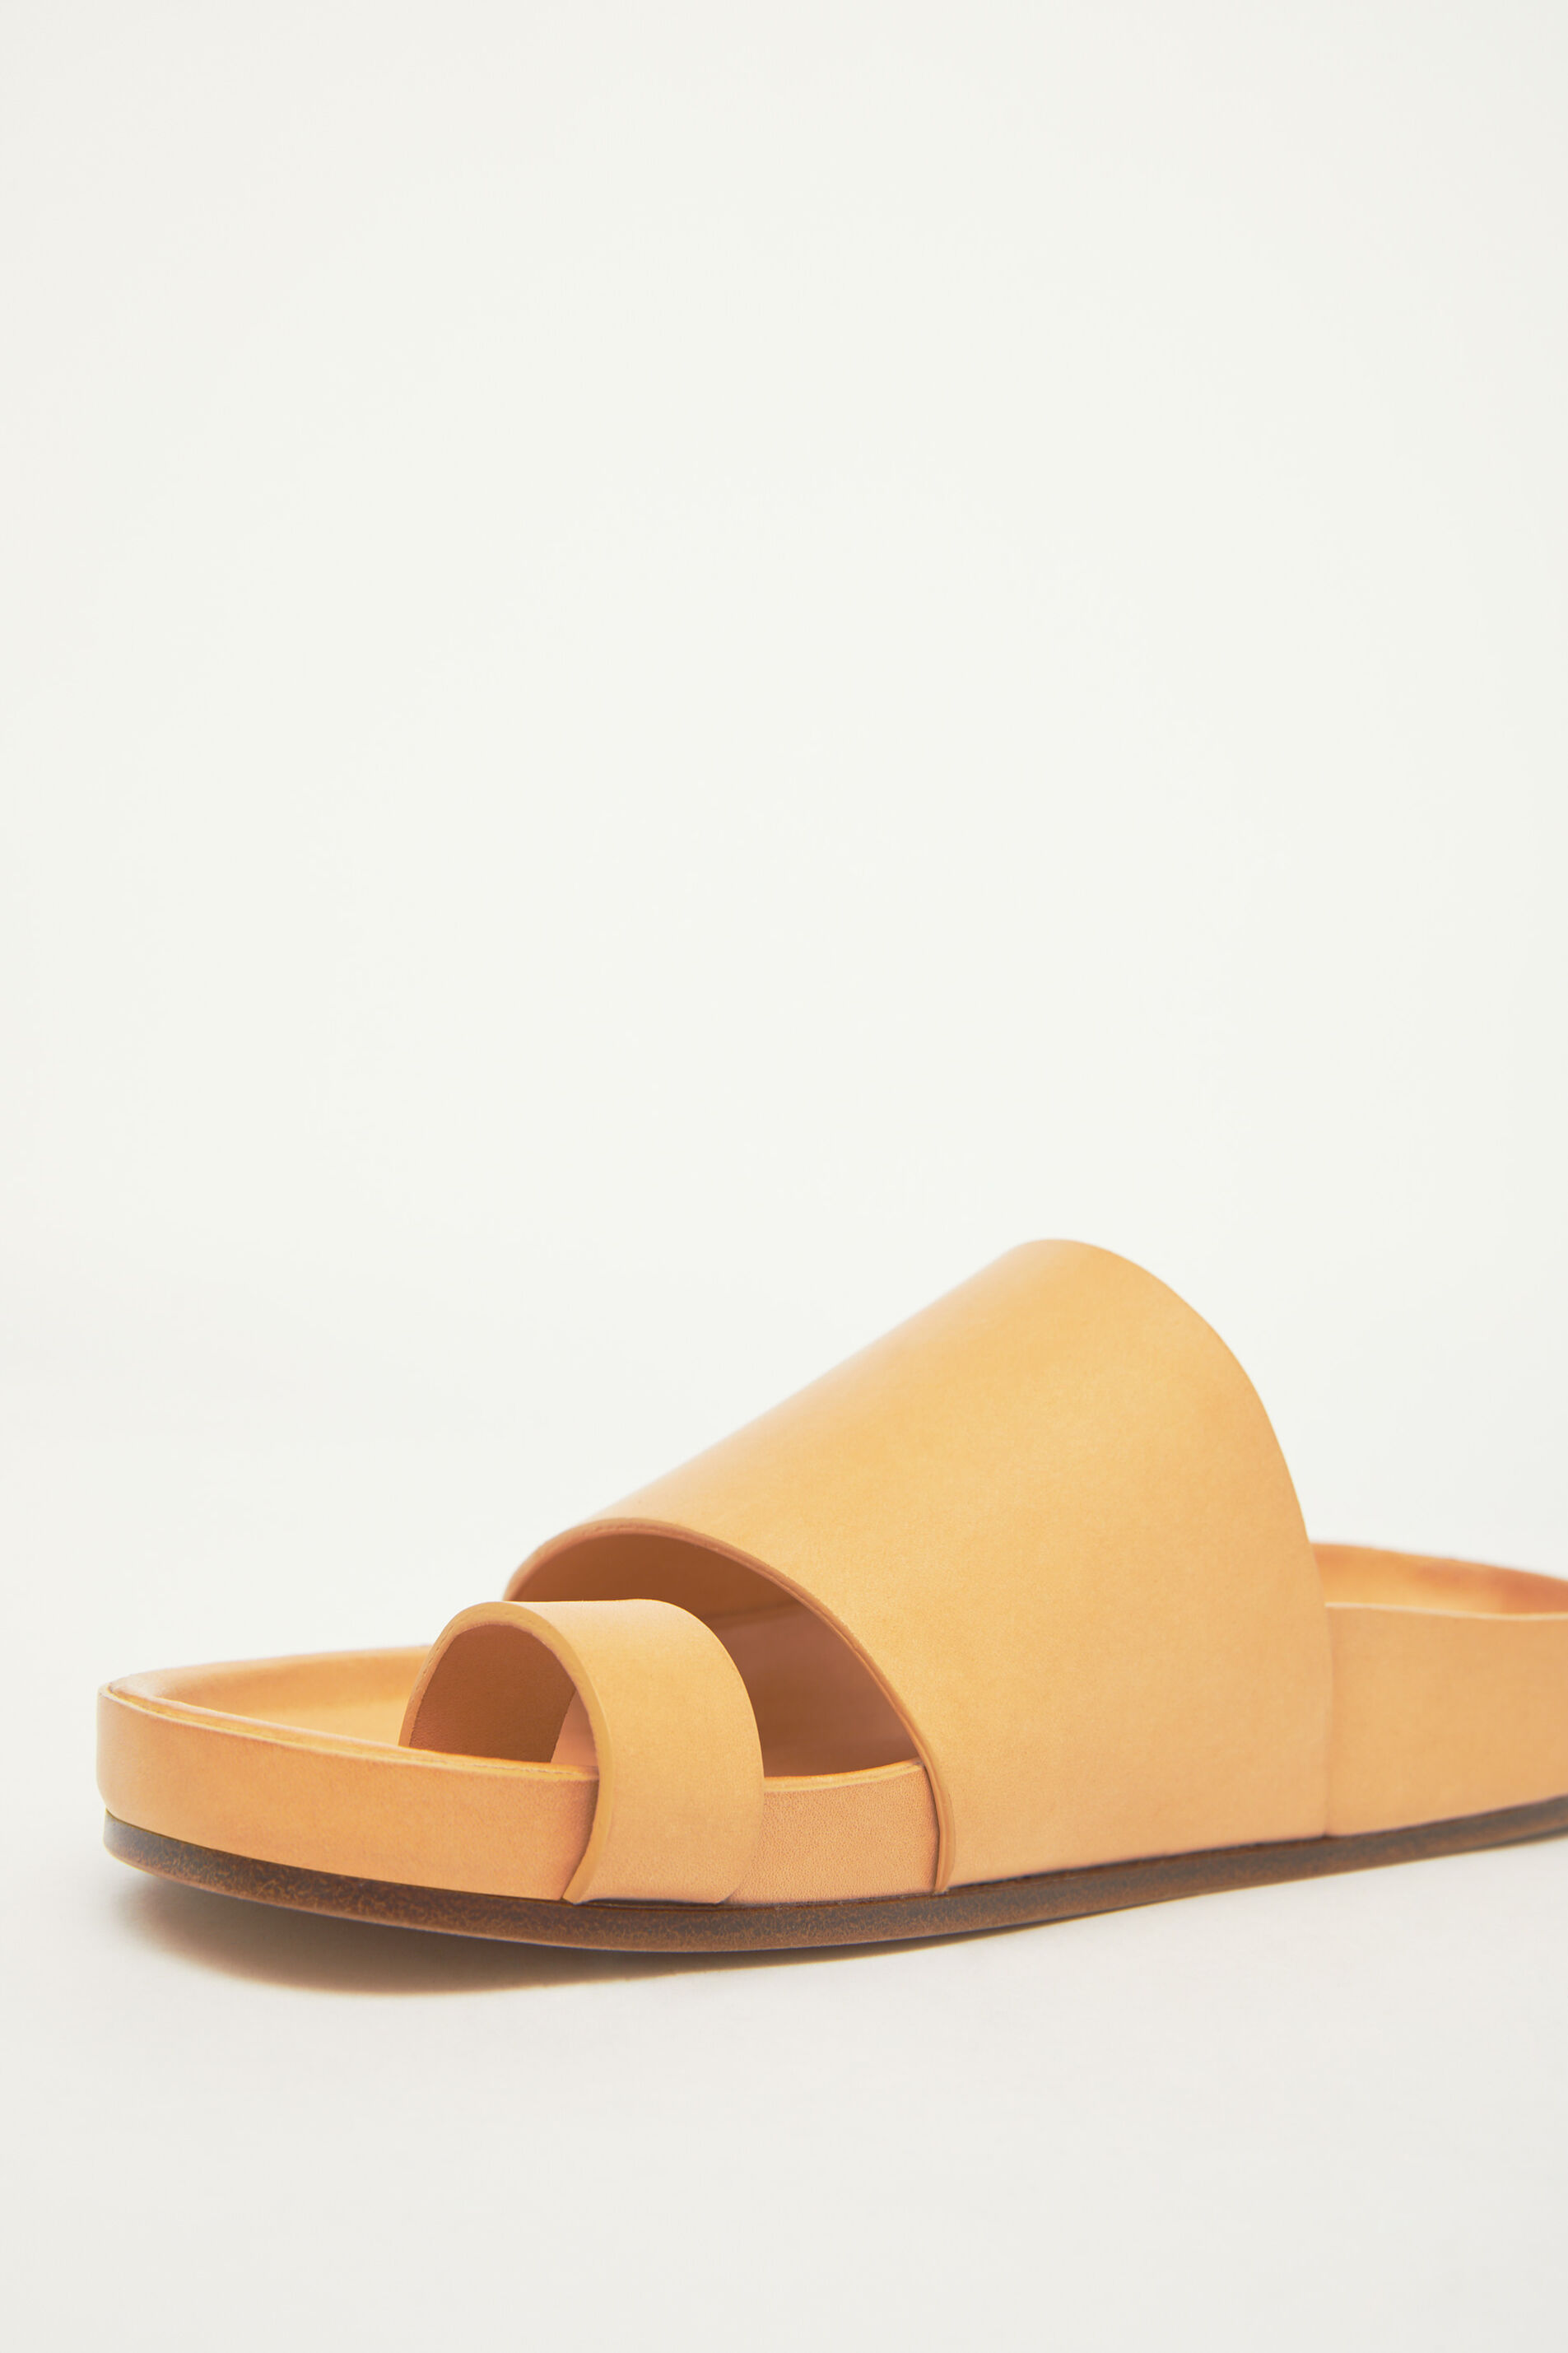 Sandals, brown, large